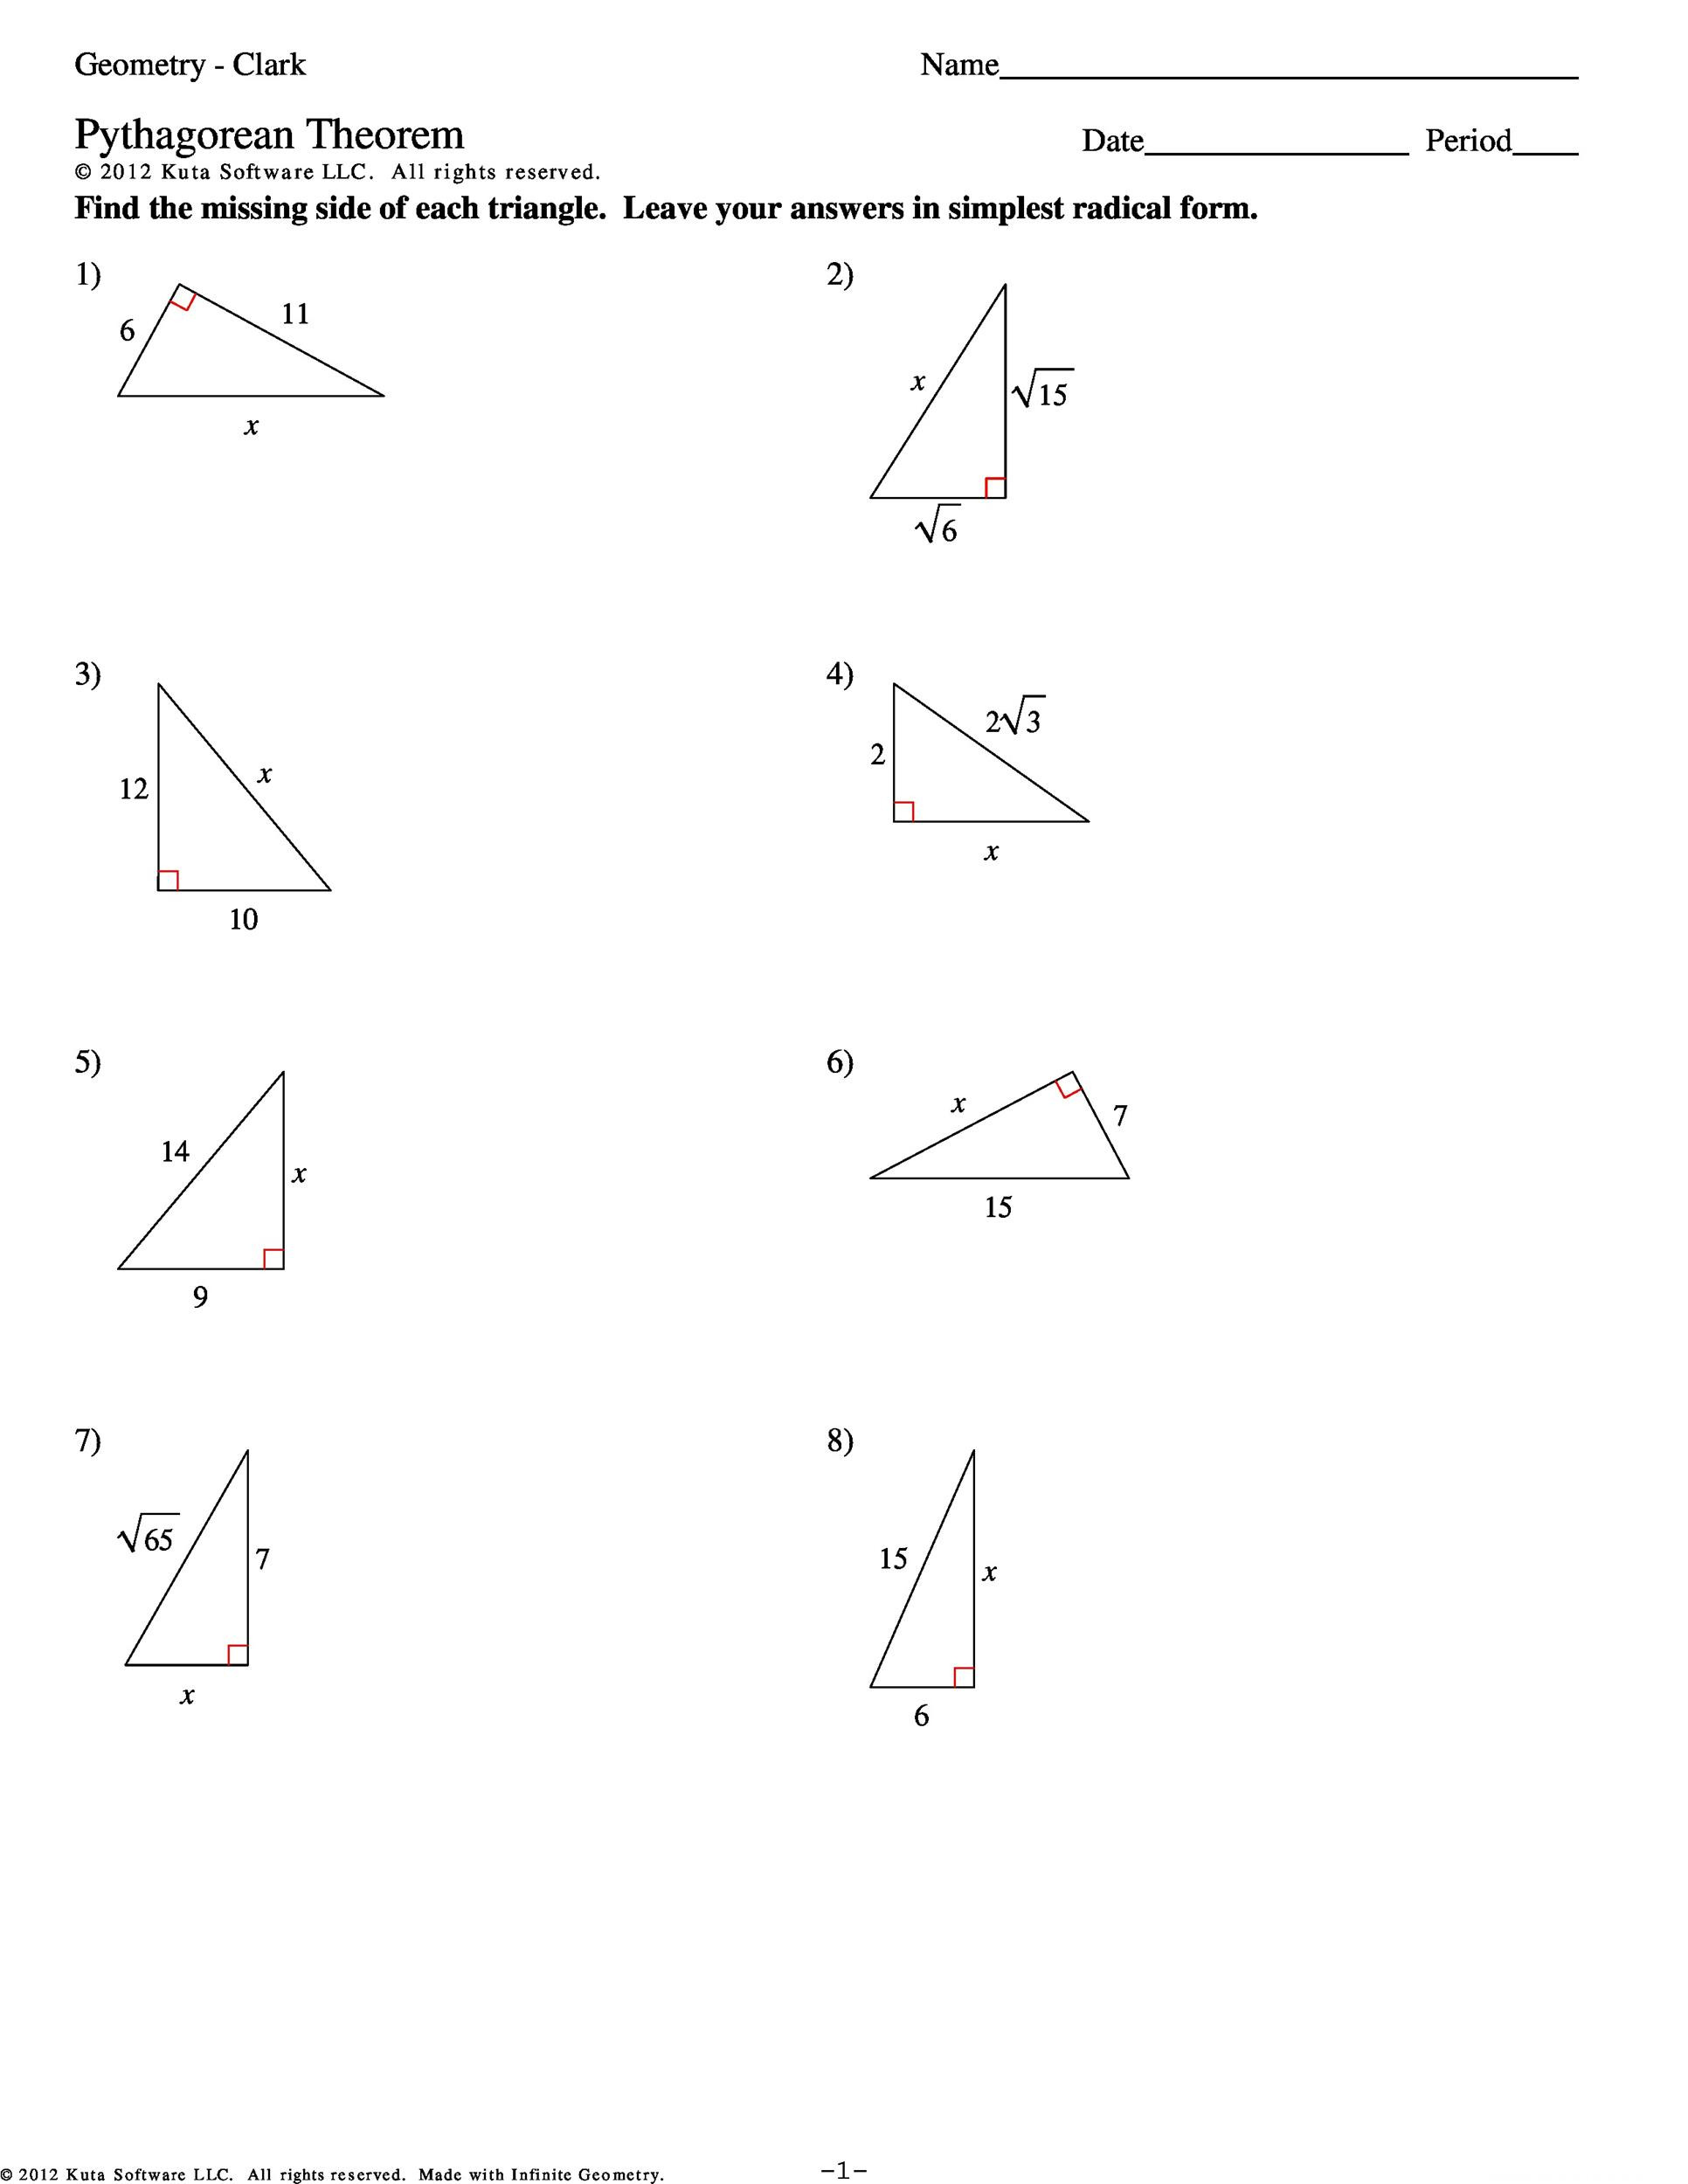 Special Right Triangles Practice Worksheet 48 Pythagorean theorem Worksheet with Answers [word Pdf]